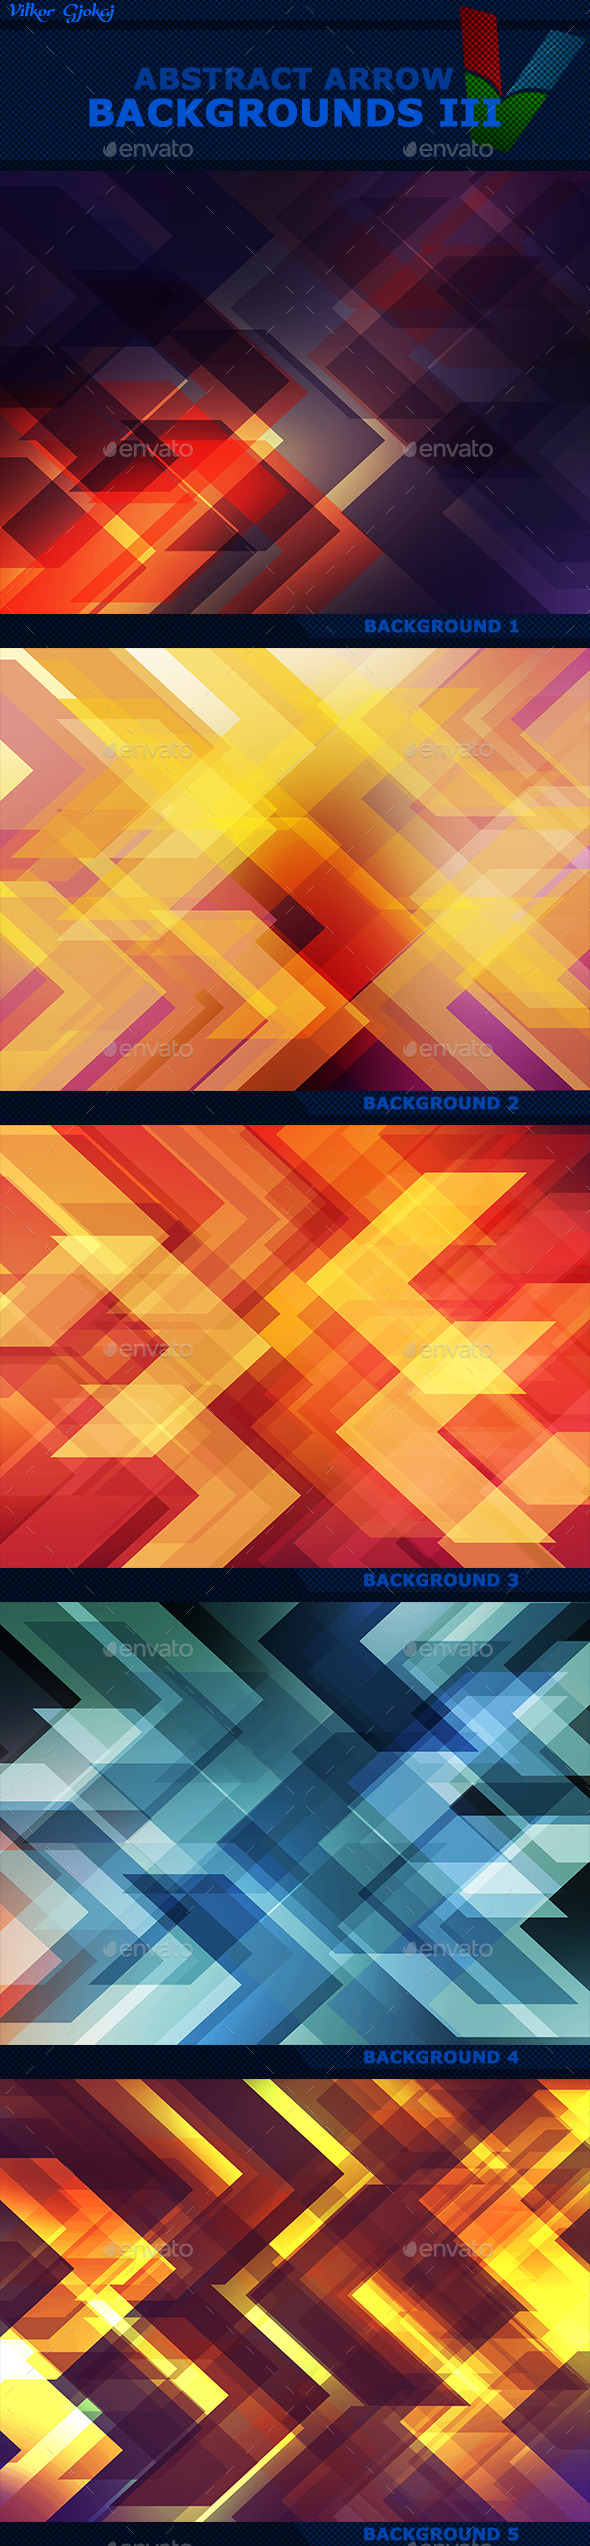 Abstract Arrow Backgrounds III - Abstract Backgrounds